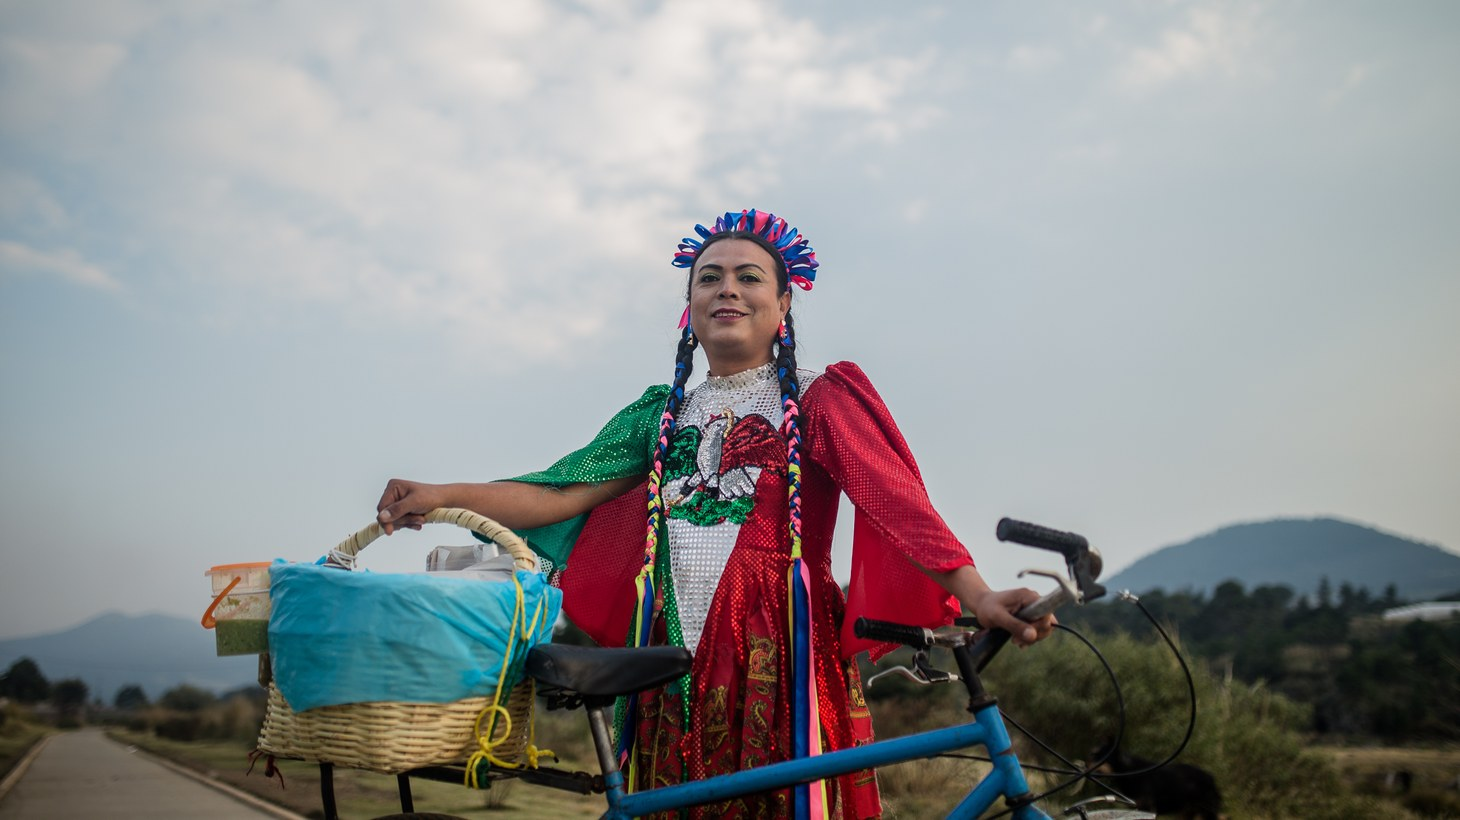 """Marven, better known as Lady Tacos de Canasta, sells basket tacos typically made with beans, potatoes, or chicharrón, in the Netflix series, """"Taco Chronicles."""""""